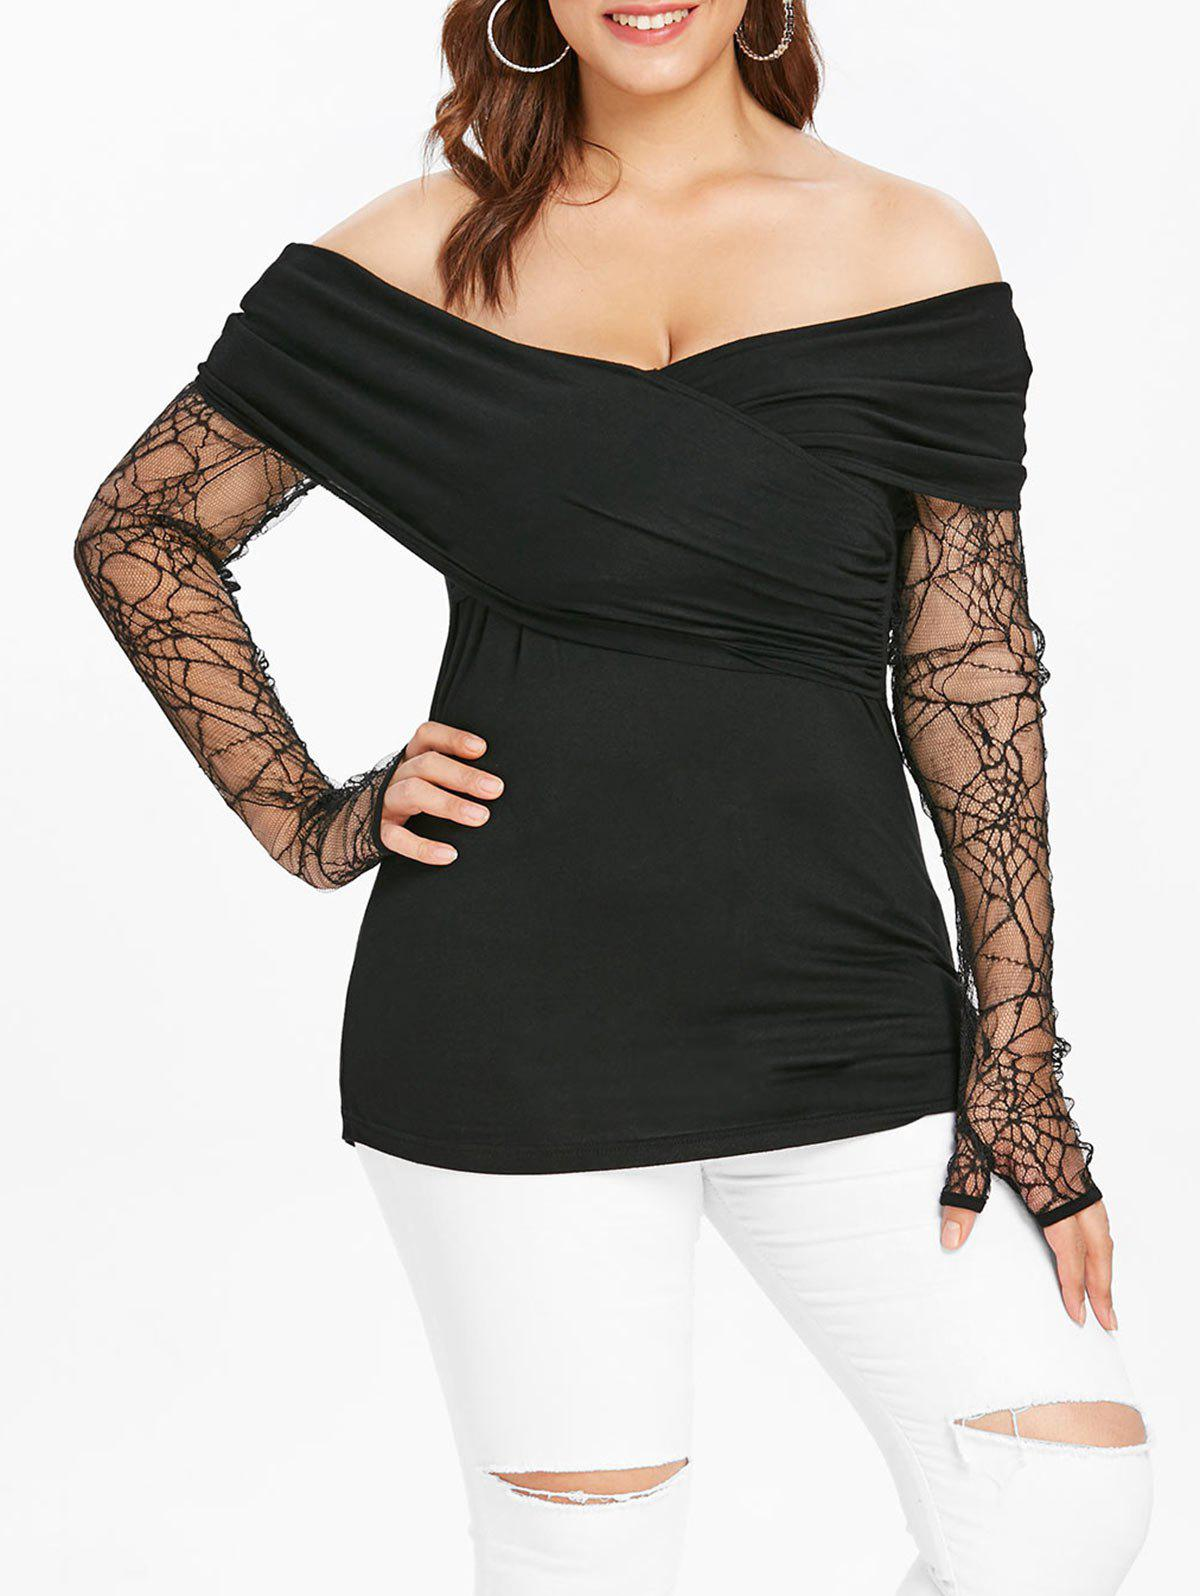 Affordable Plus Size Halloween Thumb Hole T-shirt